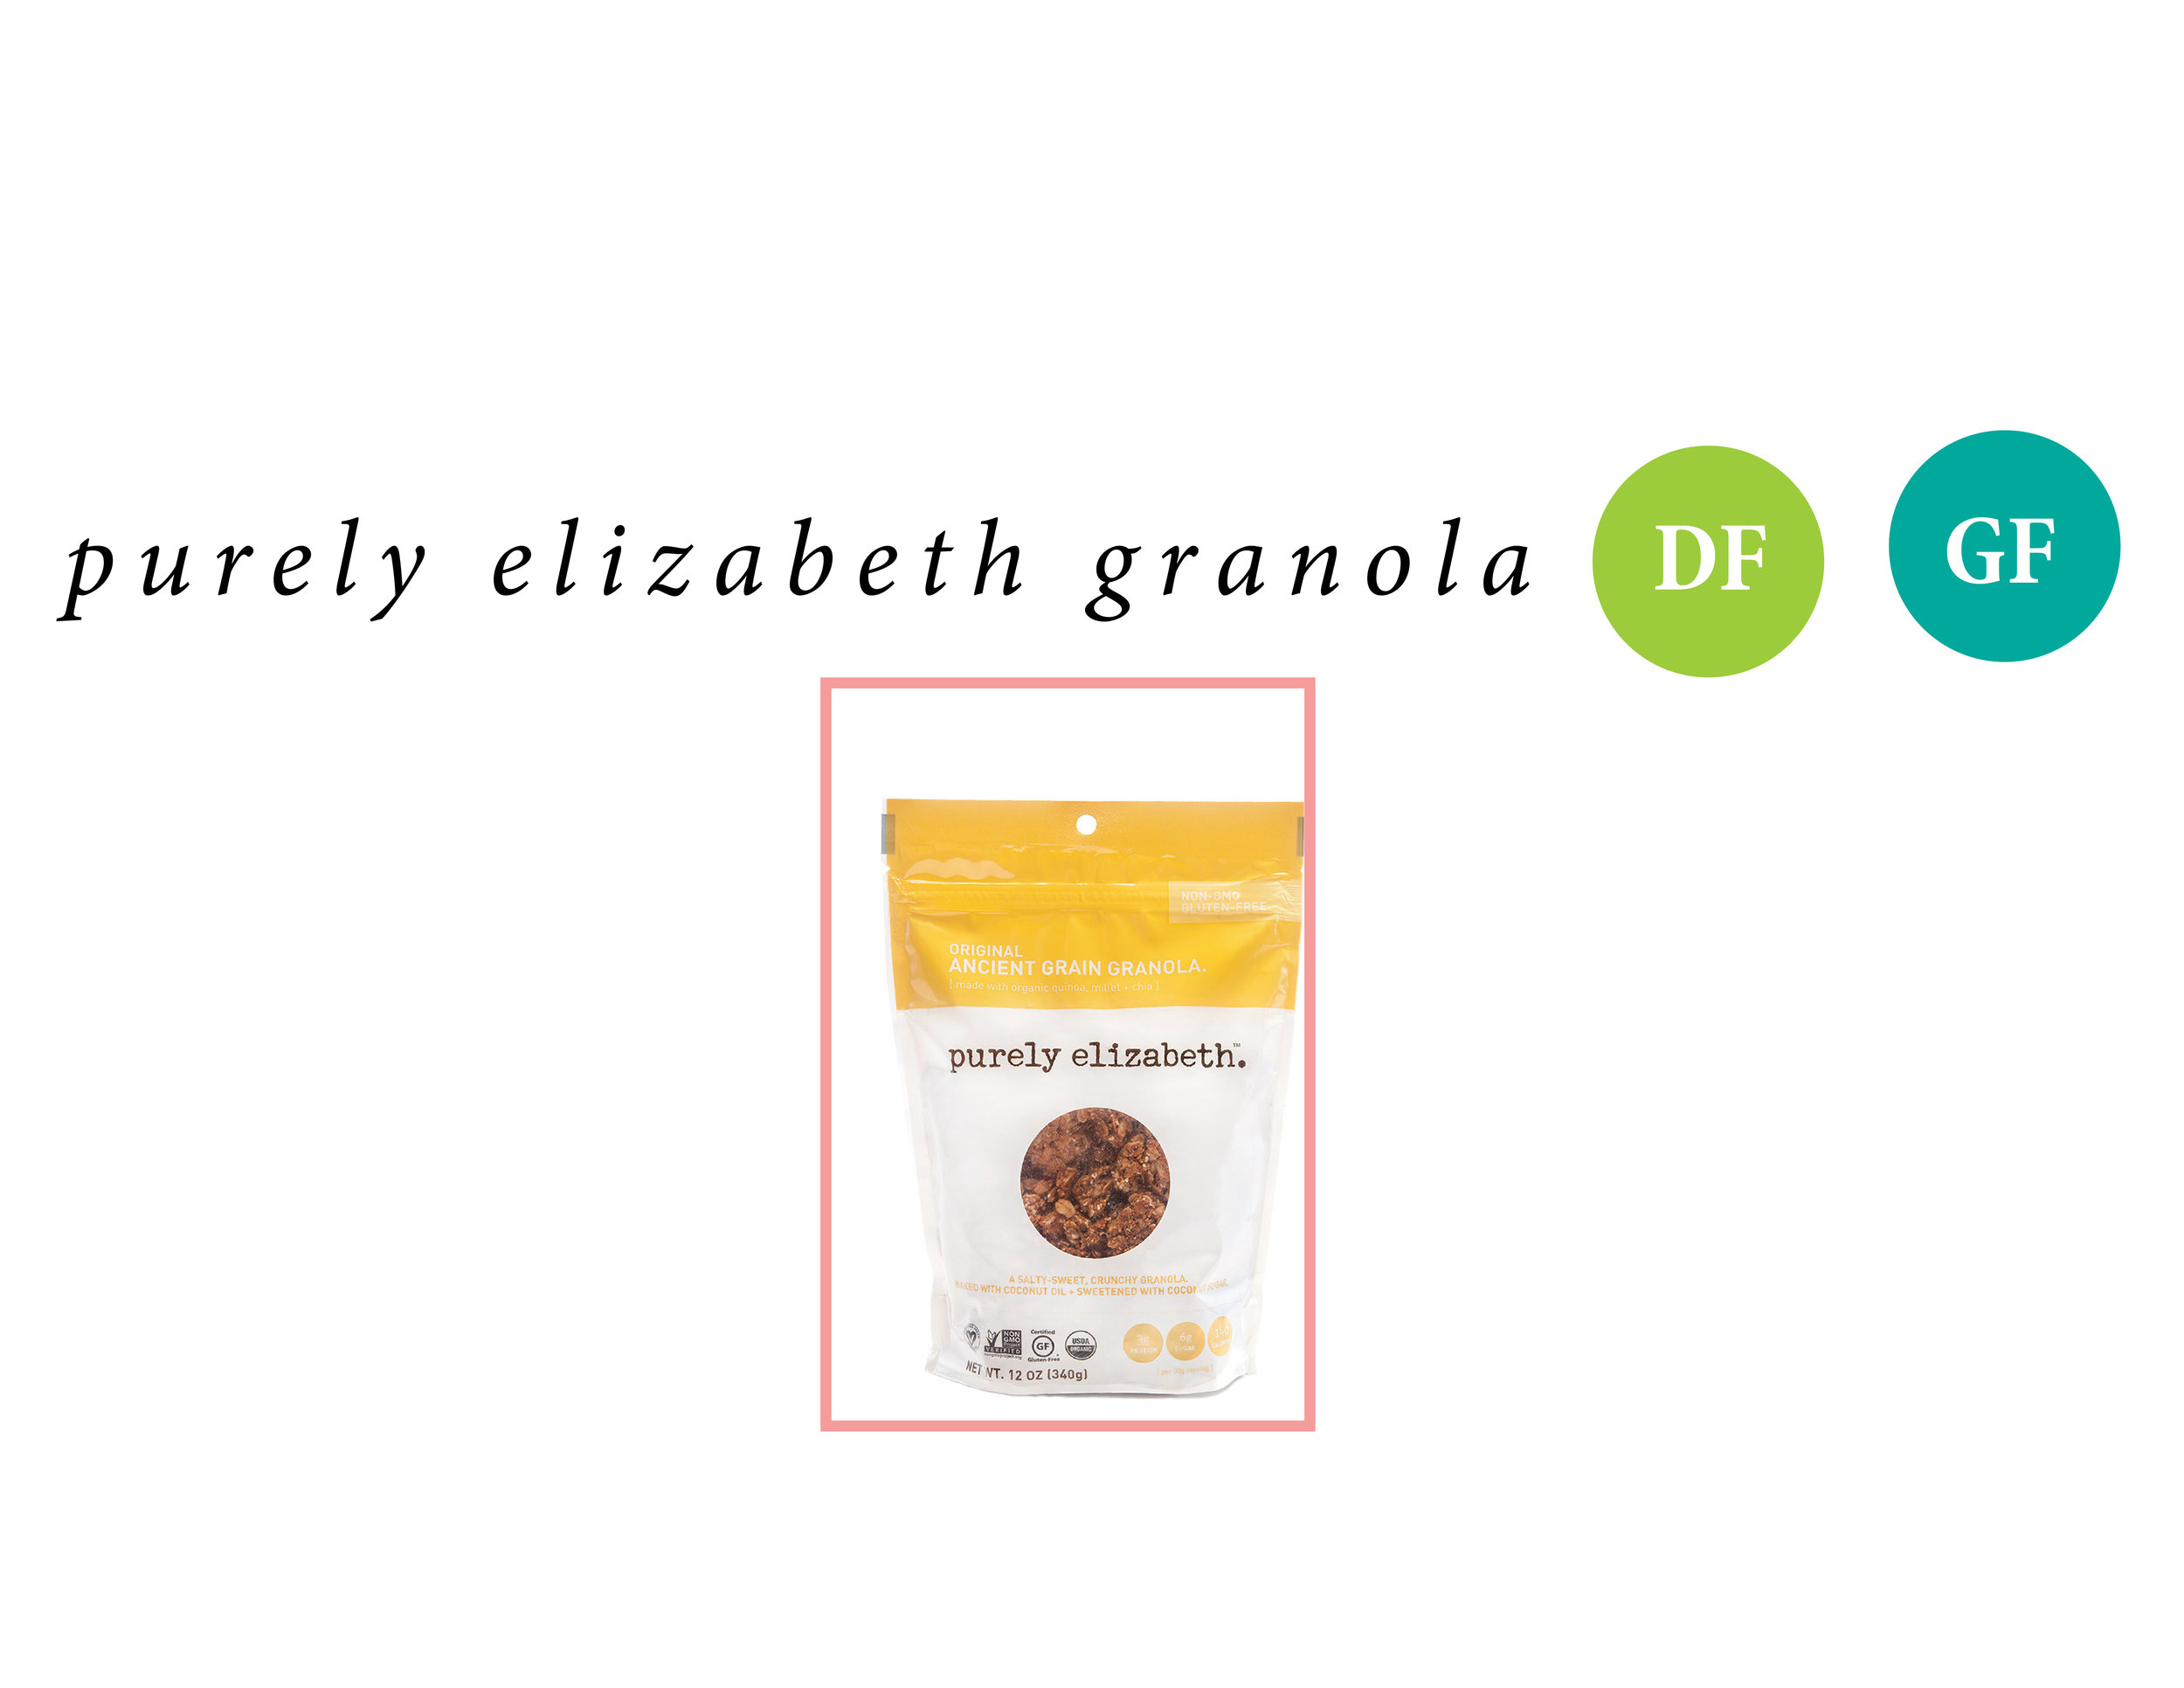 If you're a cereal girl, like me, this one is for you. I love my Lucky Charms. Fruity Pebbles, allllll the sugary stuff. Purely Elizabeth granola comes in crazy good flavors. Pour some almond milk ontop, throw it on some greek yoghurt, or just eat it from the perfectly packaged bag.